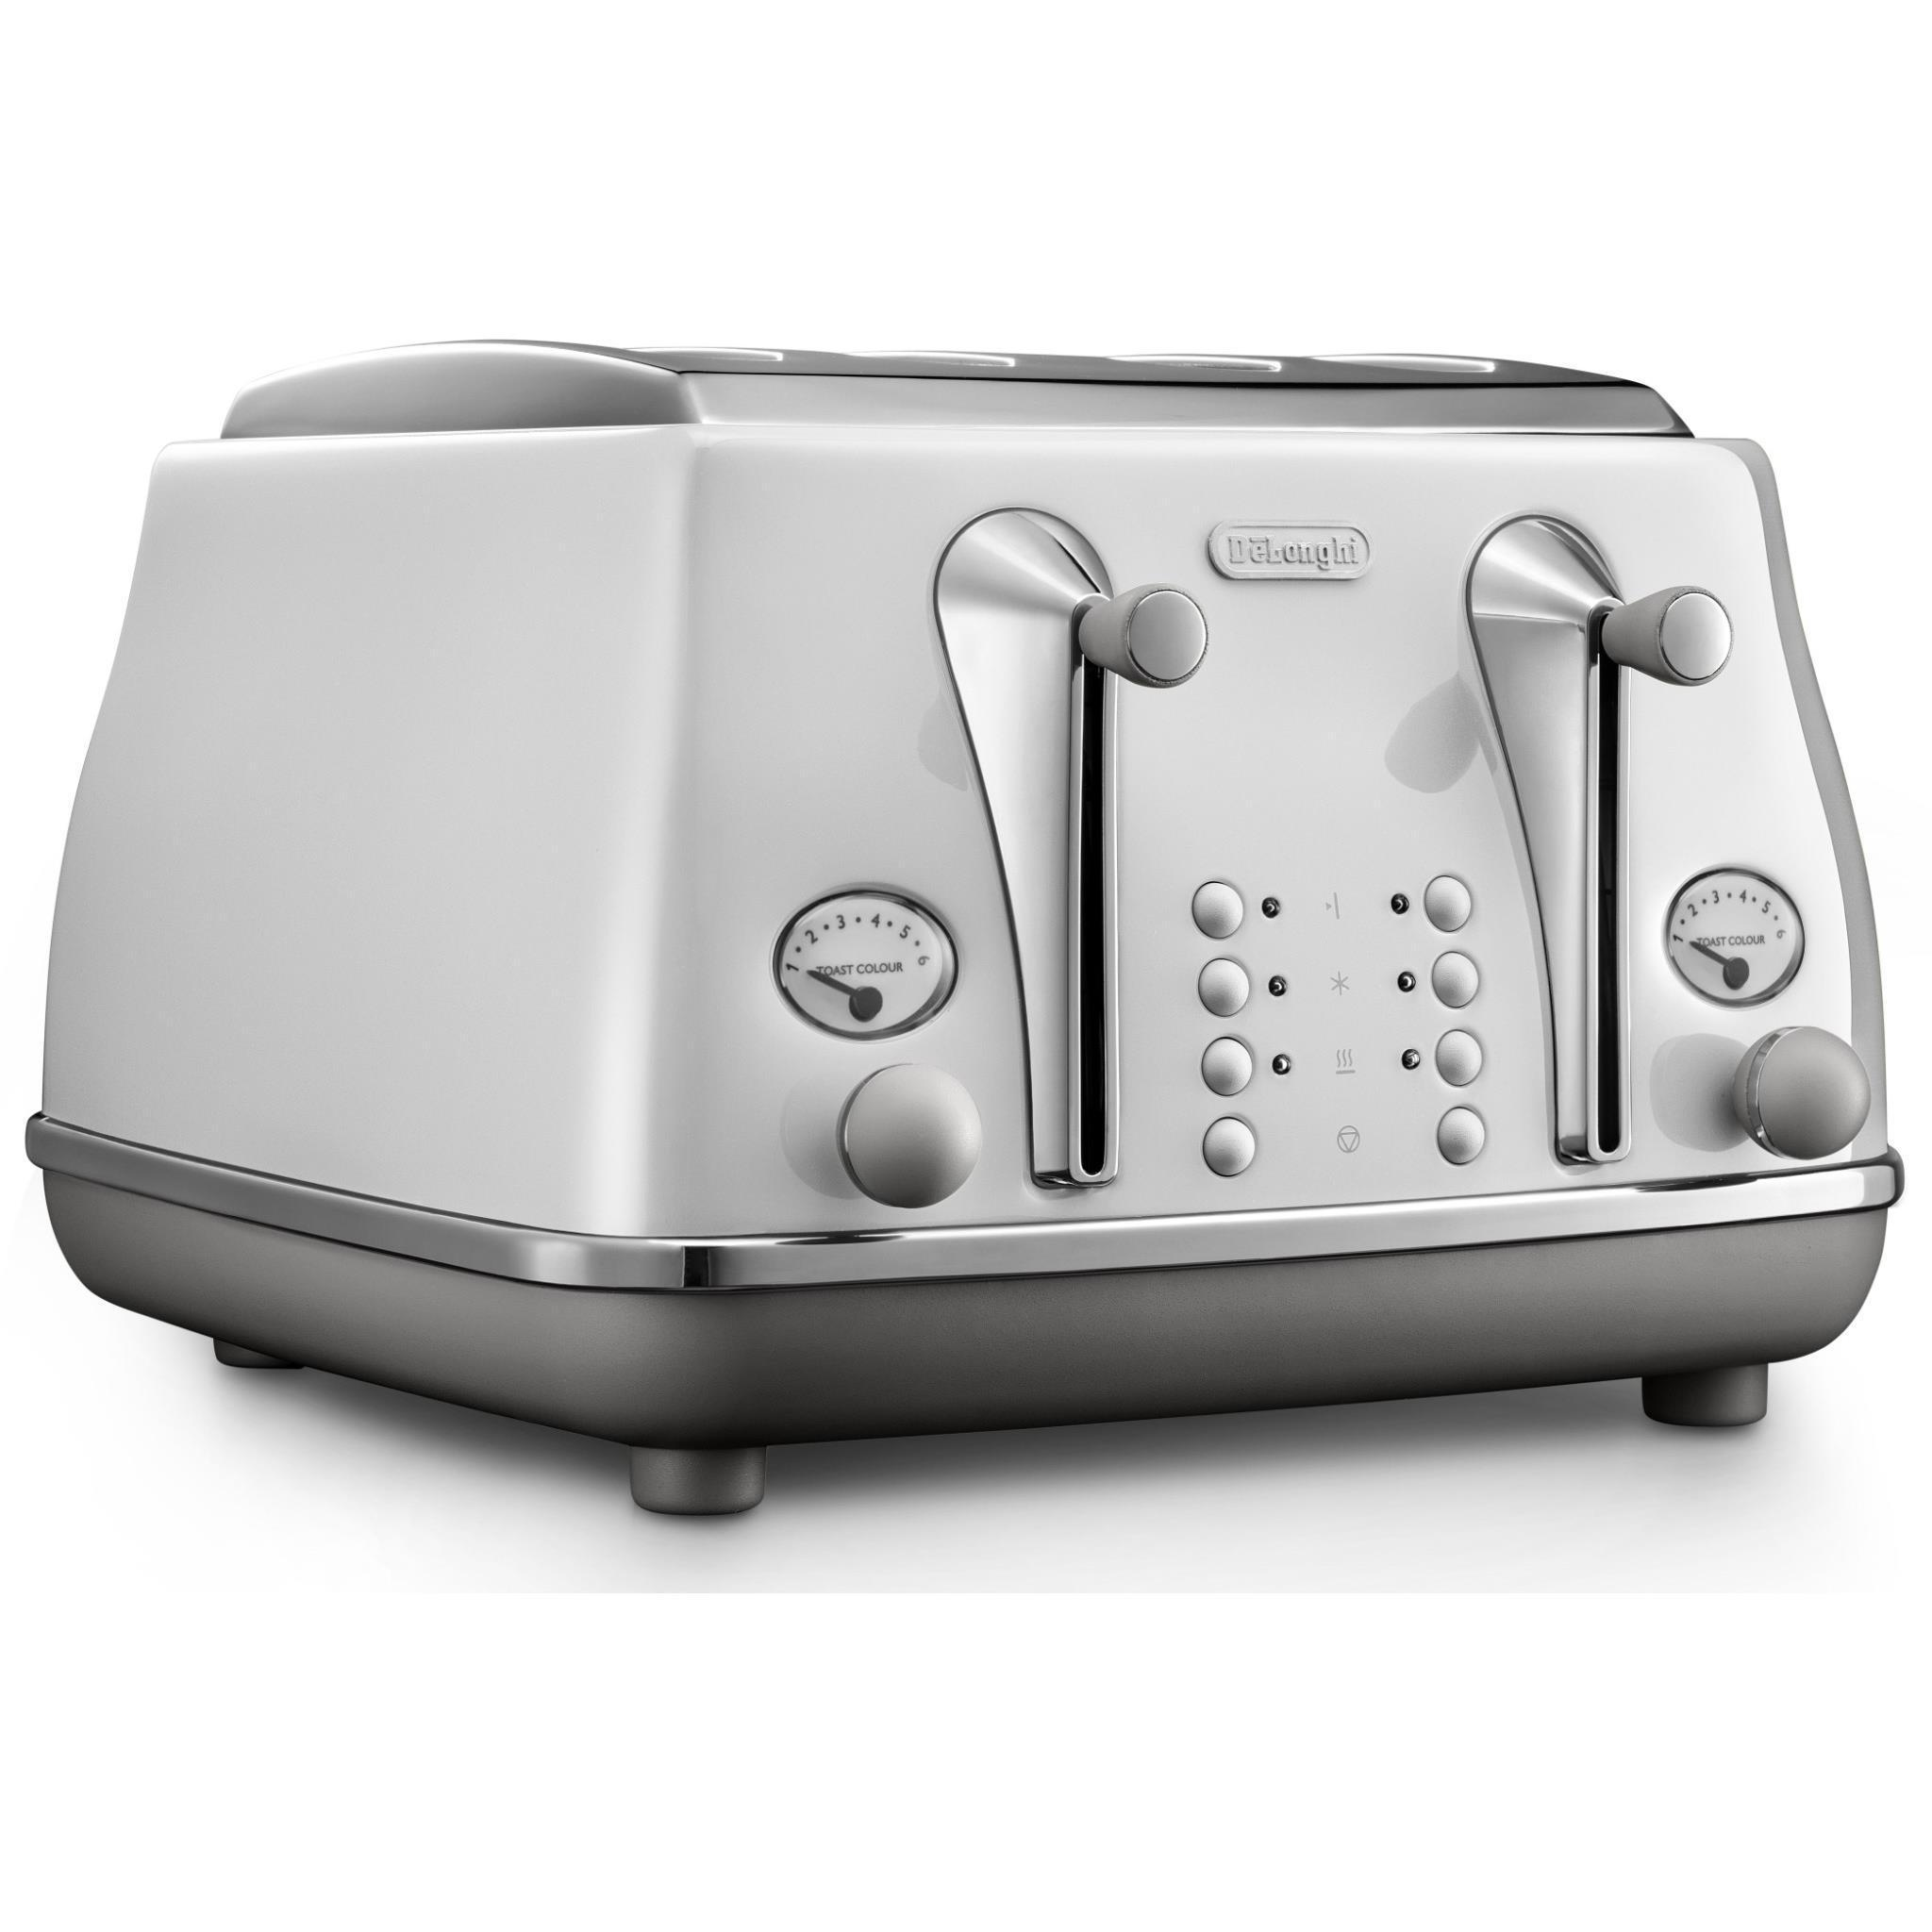 DeLonghi Icona Capitals 4 Slice Toaster (Sydney White)